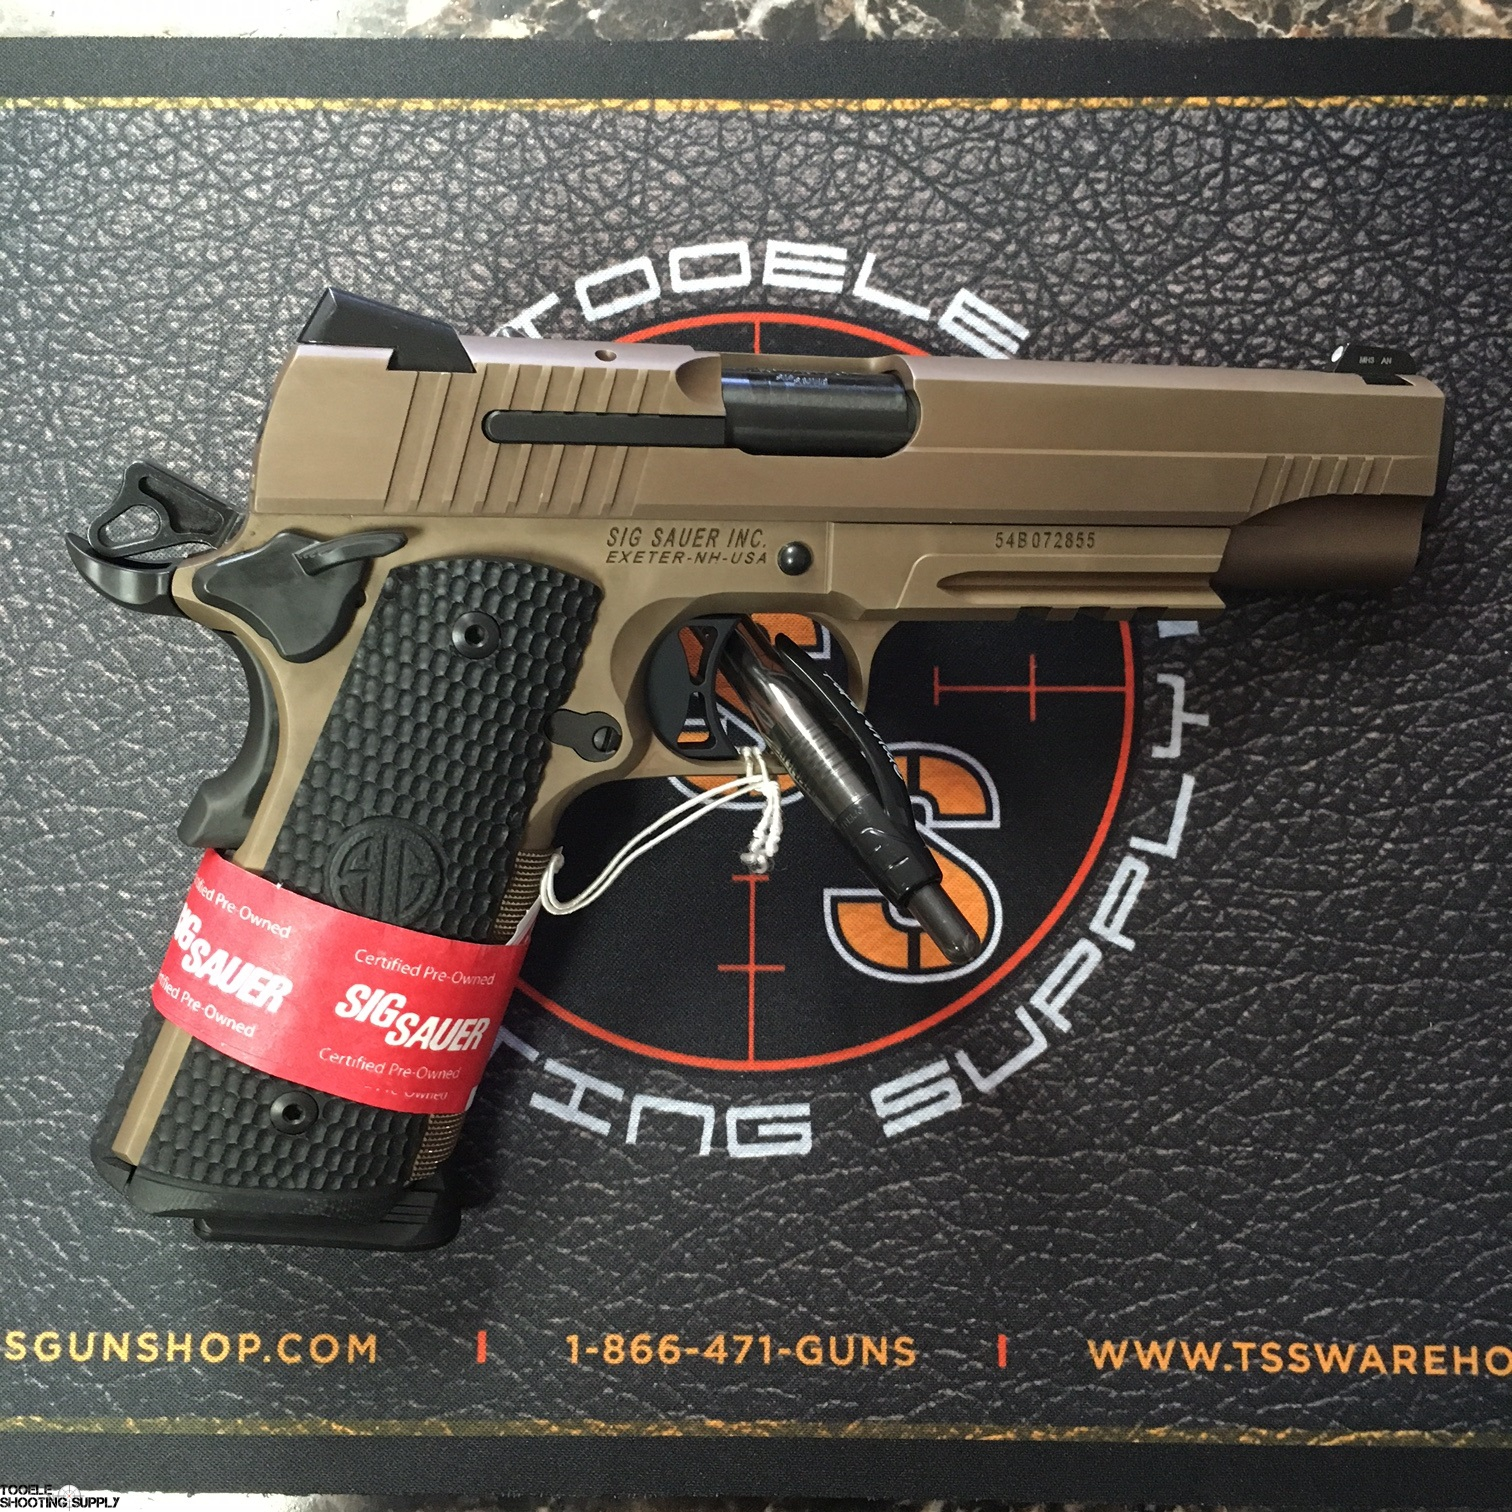 Sig Sauer 1911 Emperor Scorpion 45 ACP Semi-Auto Pistol, C P O  (Certified  Pre-Owned), Custom FDE Frame, Piranha G-10 Grips - Sig Sauer UD19GSR-45-B